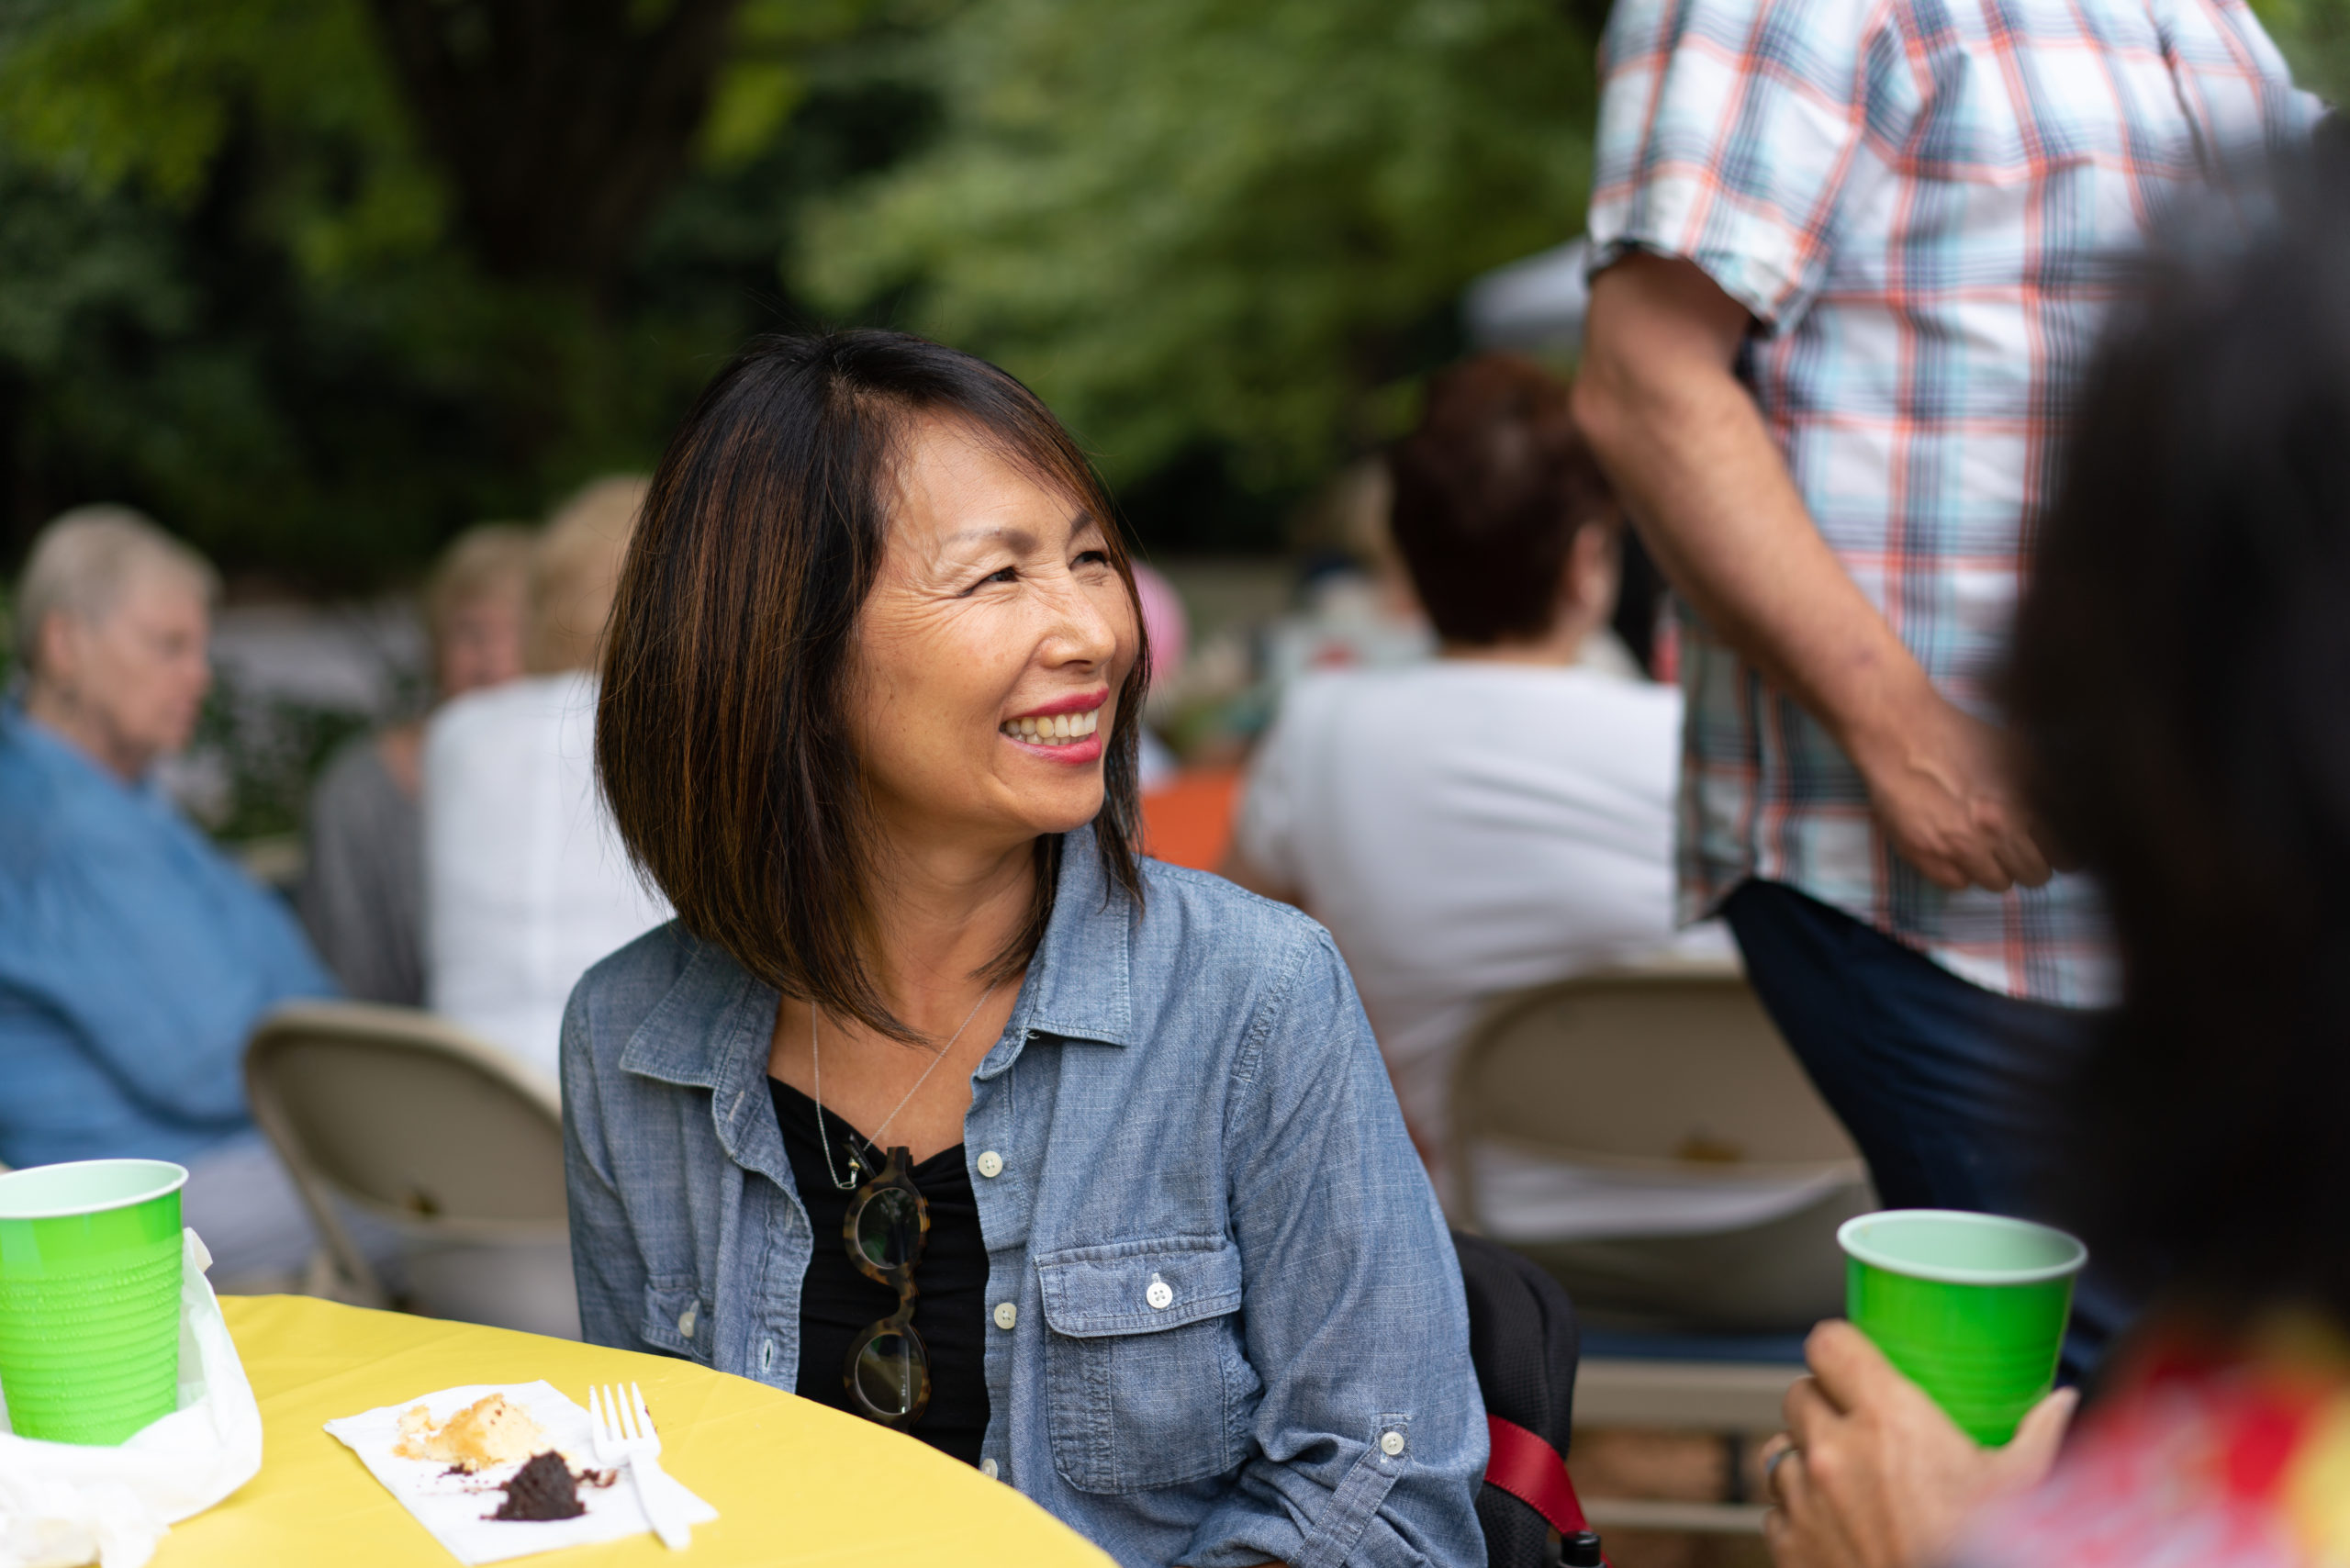 Woman in denim jacket smiling at church picnic